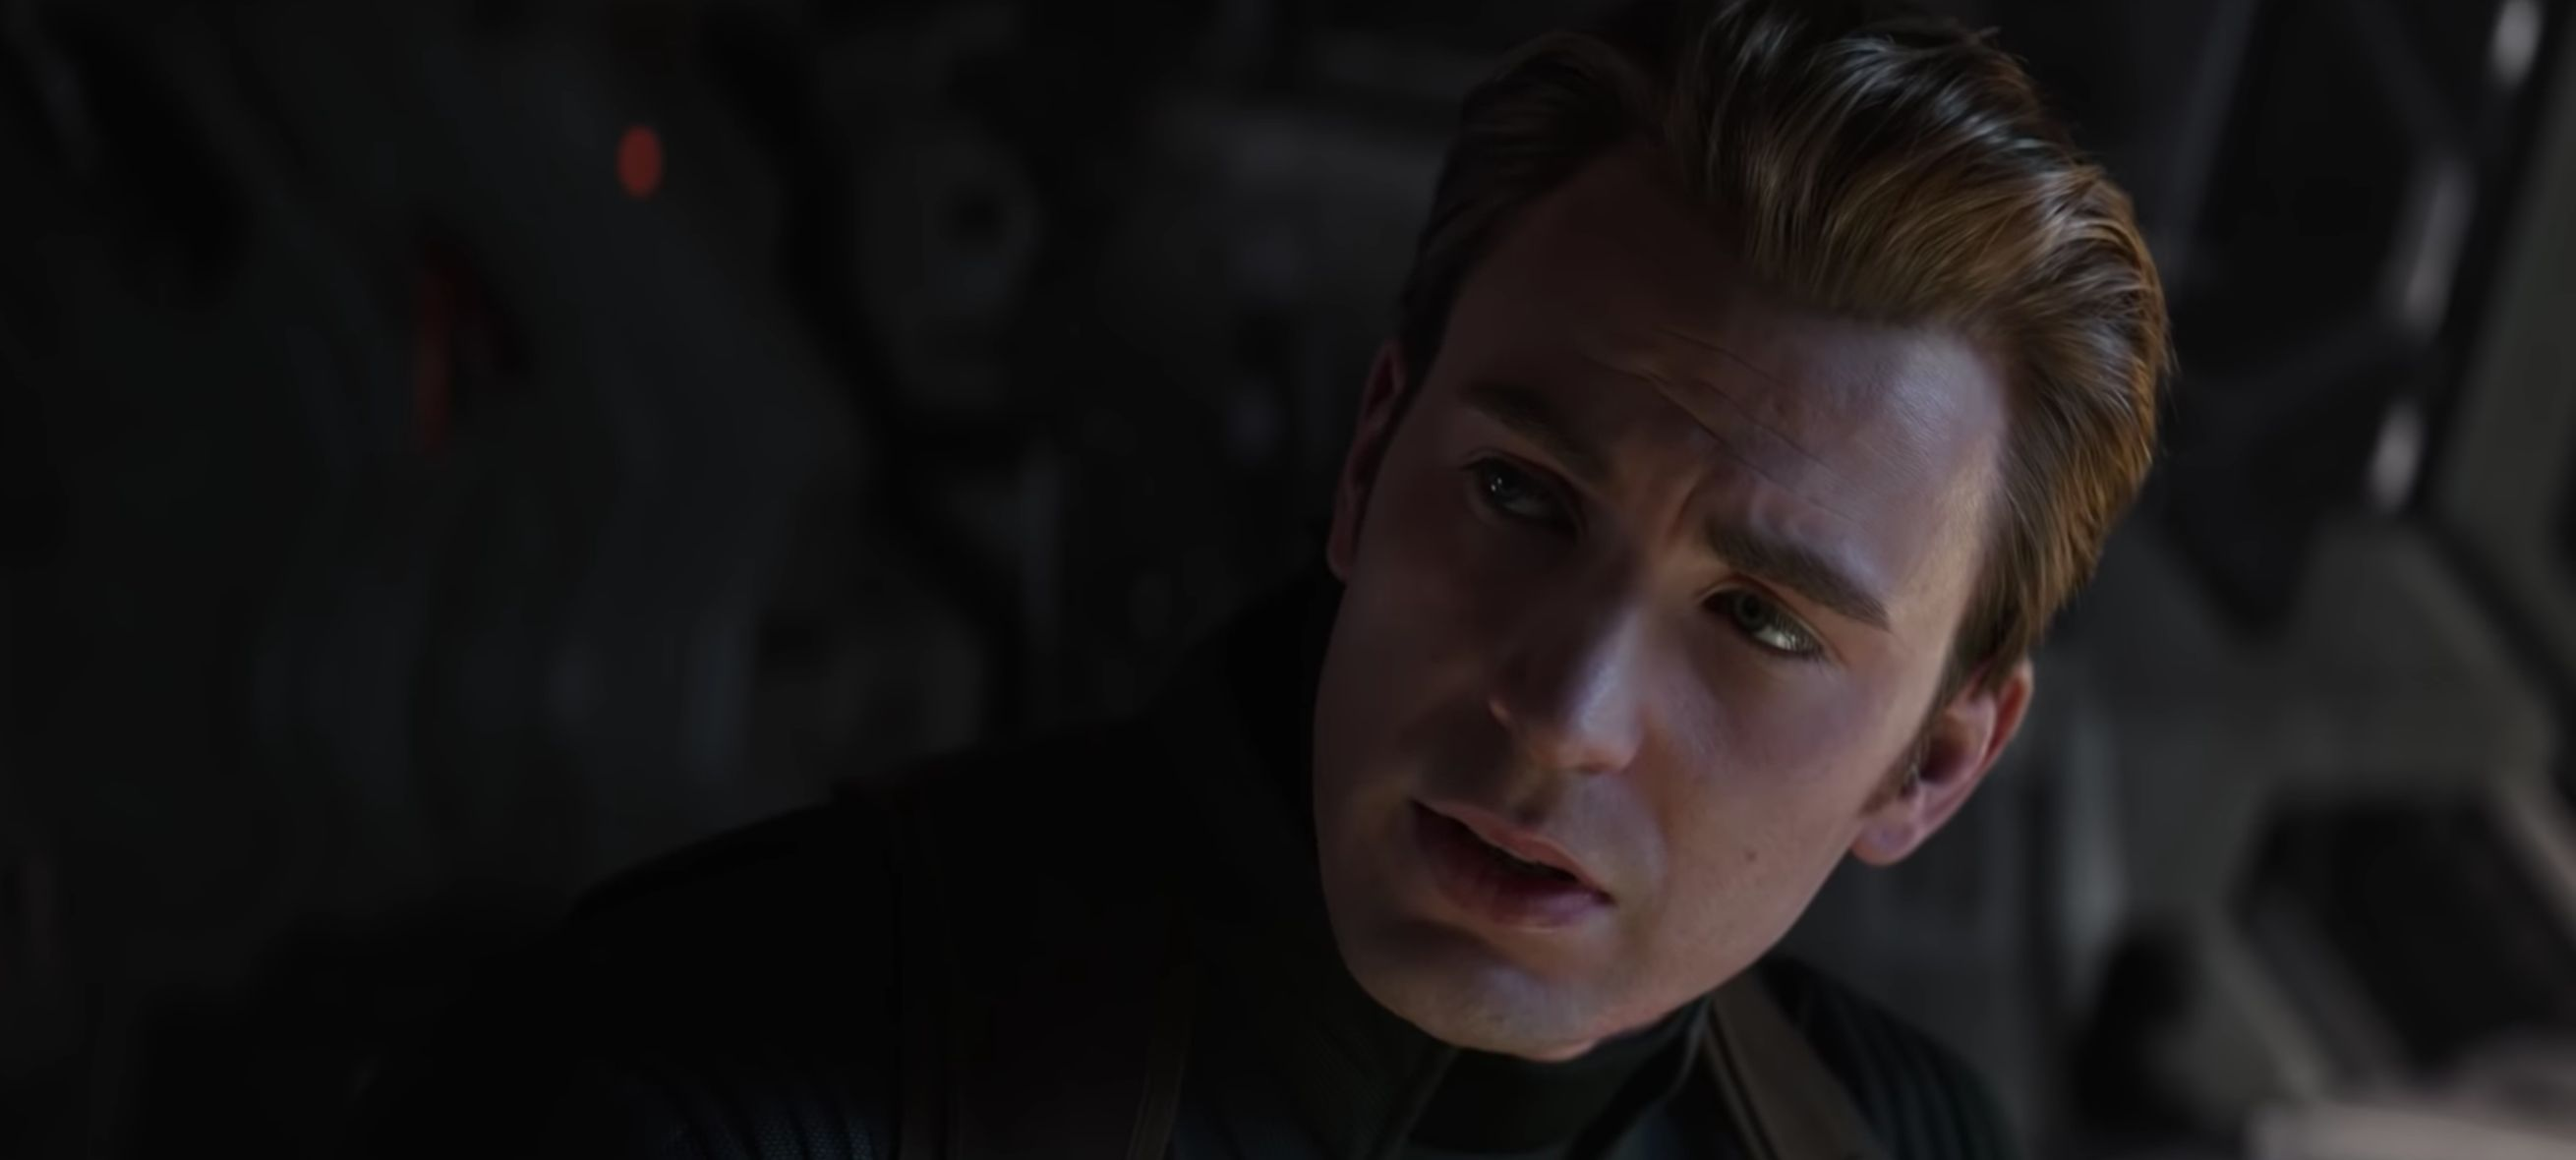 'Avengers: Endgame' Trailer Hints At Major Off-Screen